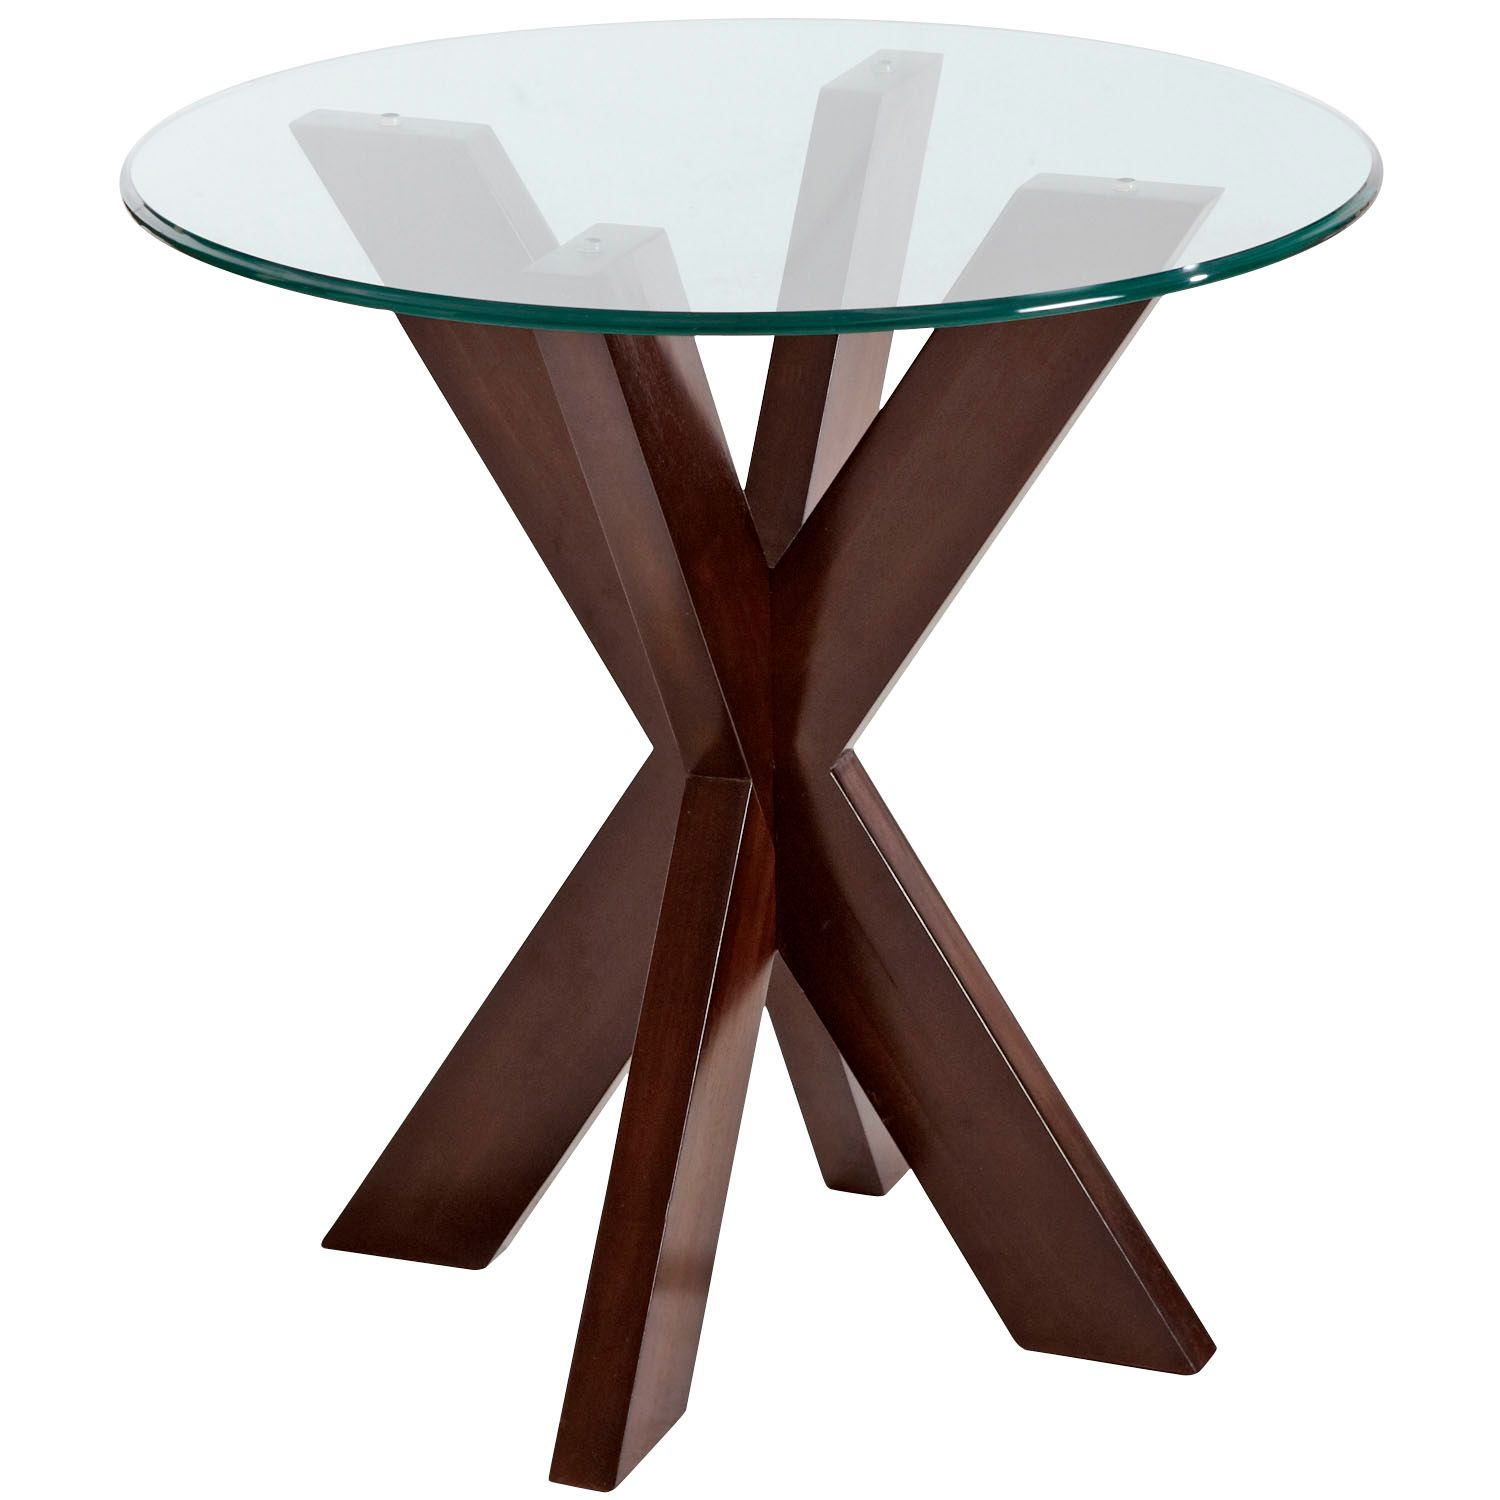 simon espresso end table base pier dark thank you handmade dog kennel house fraser bedside lamps inch high sofa round outdoor dining larkinhurst reviews retro style tables mini